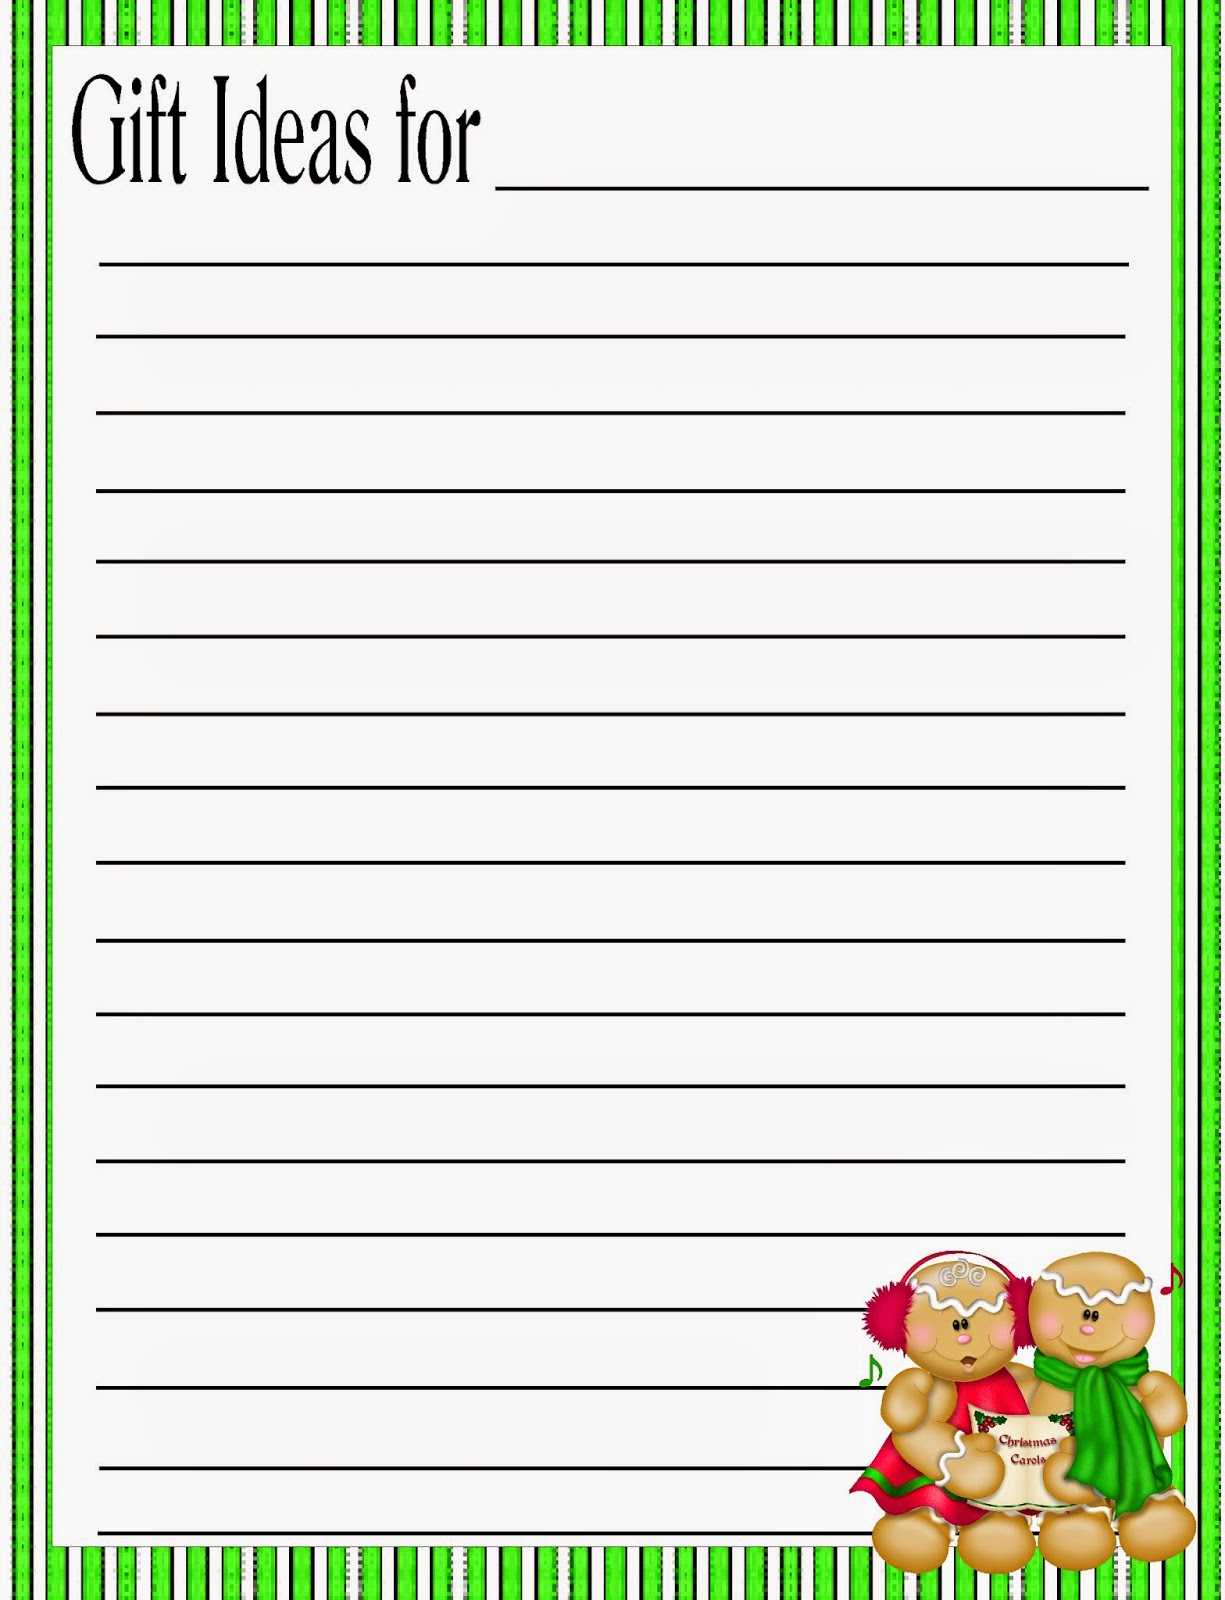 Christmas T Ideas Planner Printable